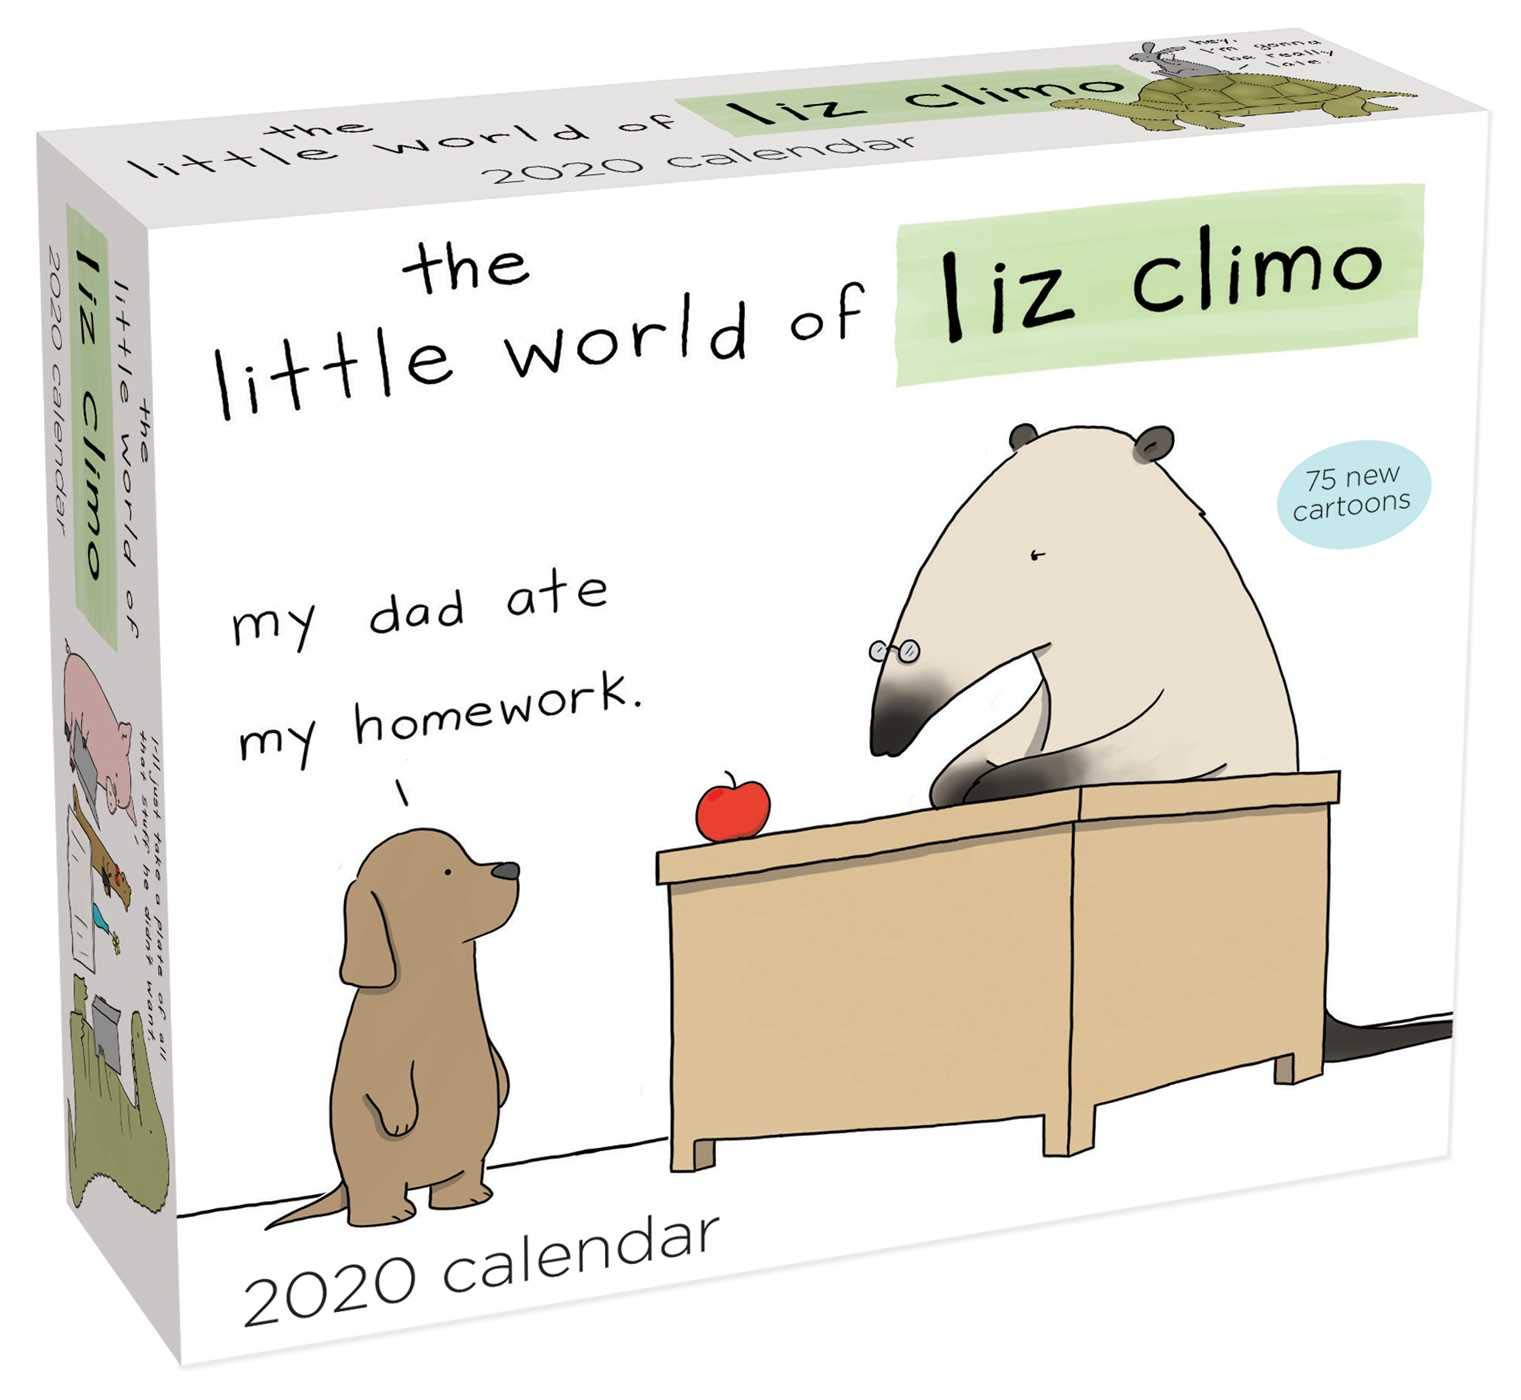 Ou 2020 Calendar The Little World of Liz Climo 2020 Day to Day Calendar: Liz Climo